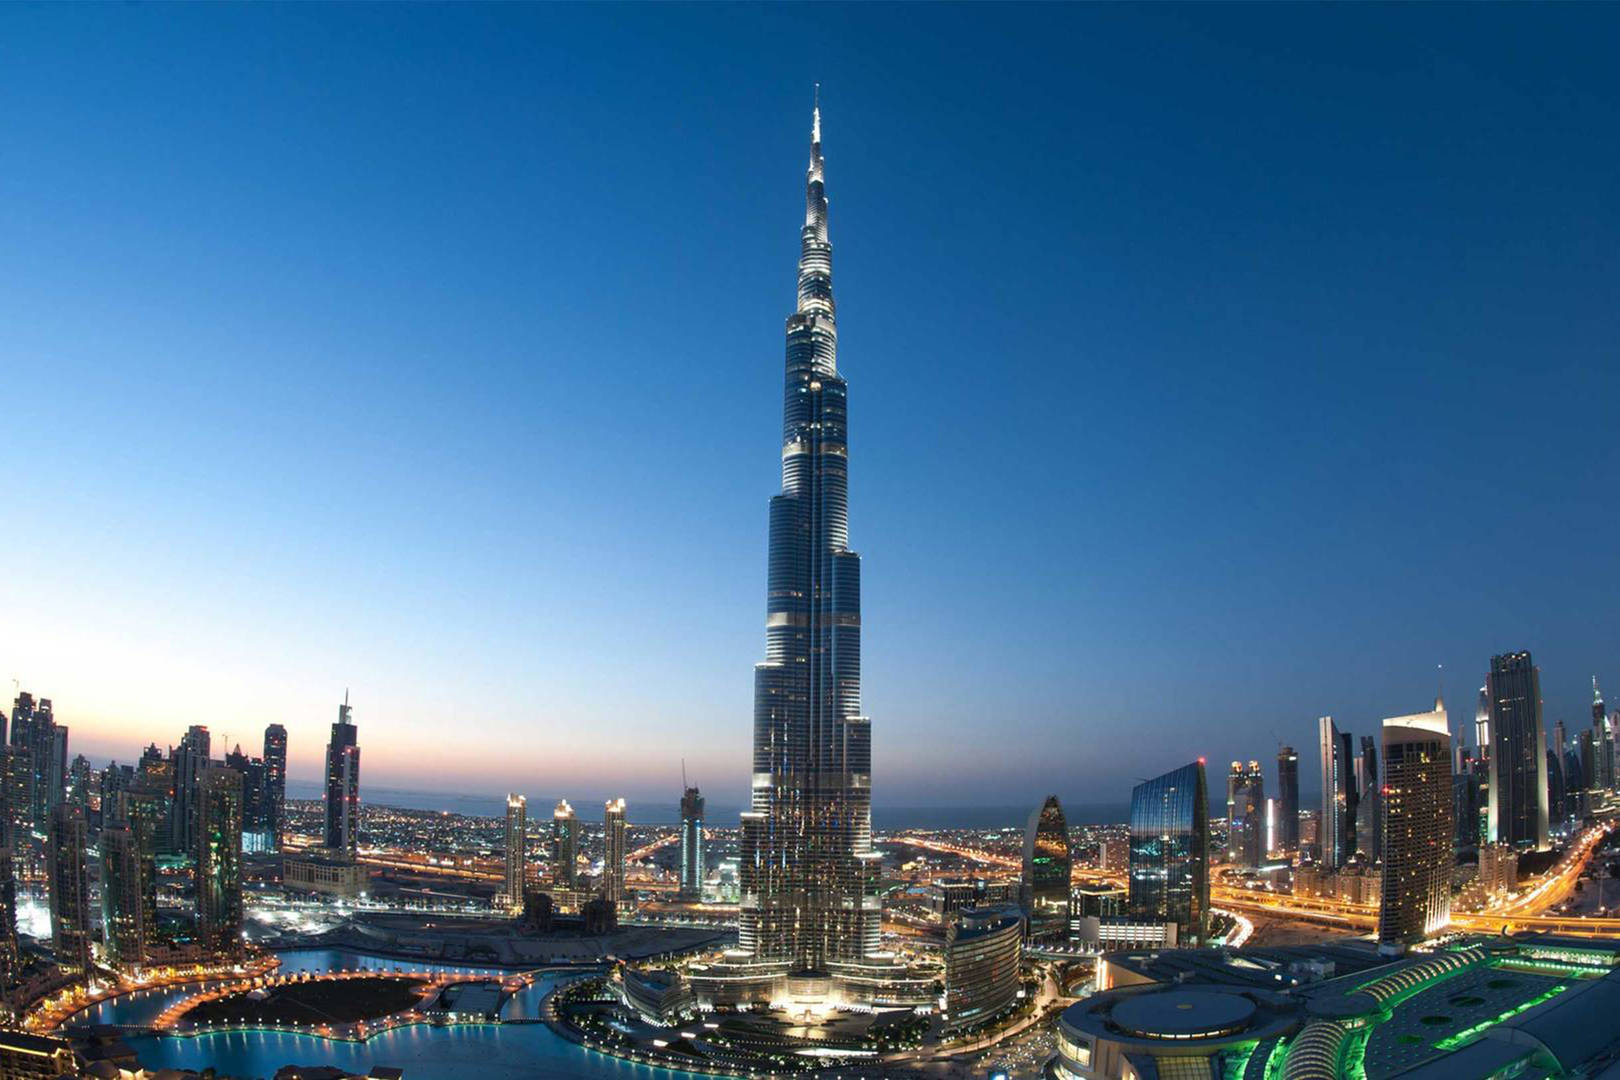 Jumeirah Aerial shot of the Burj Khalifa